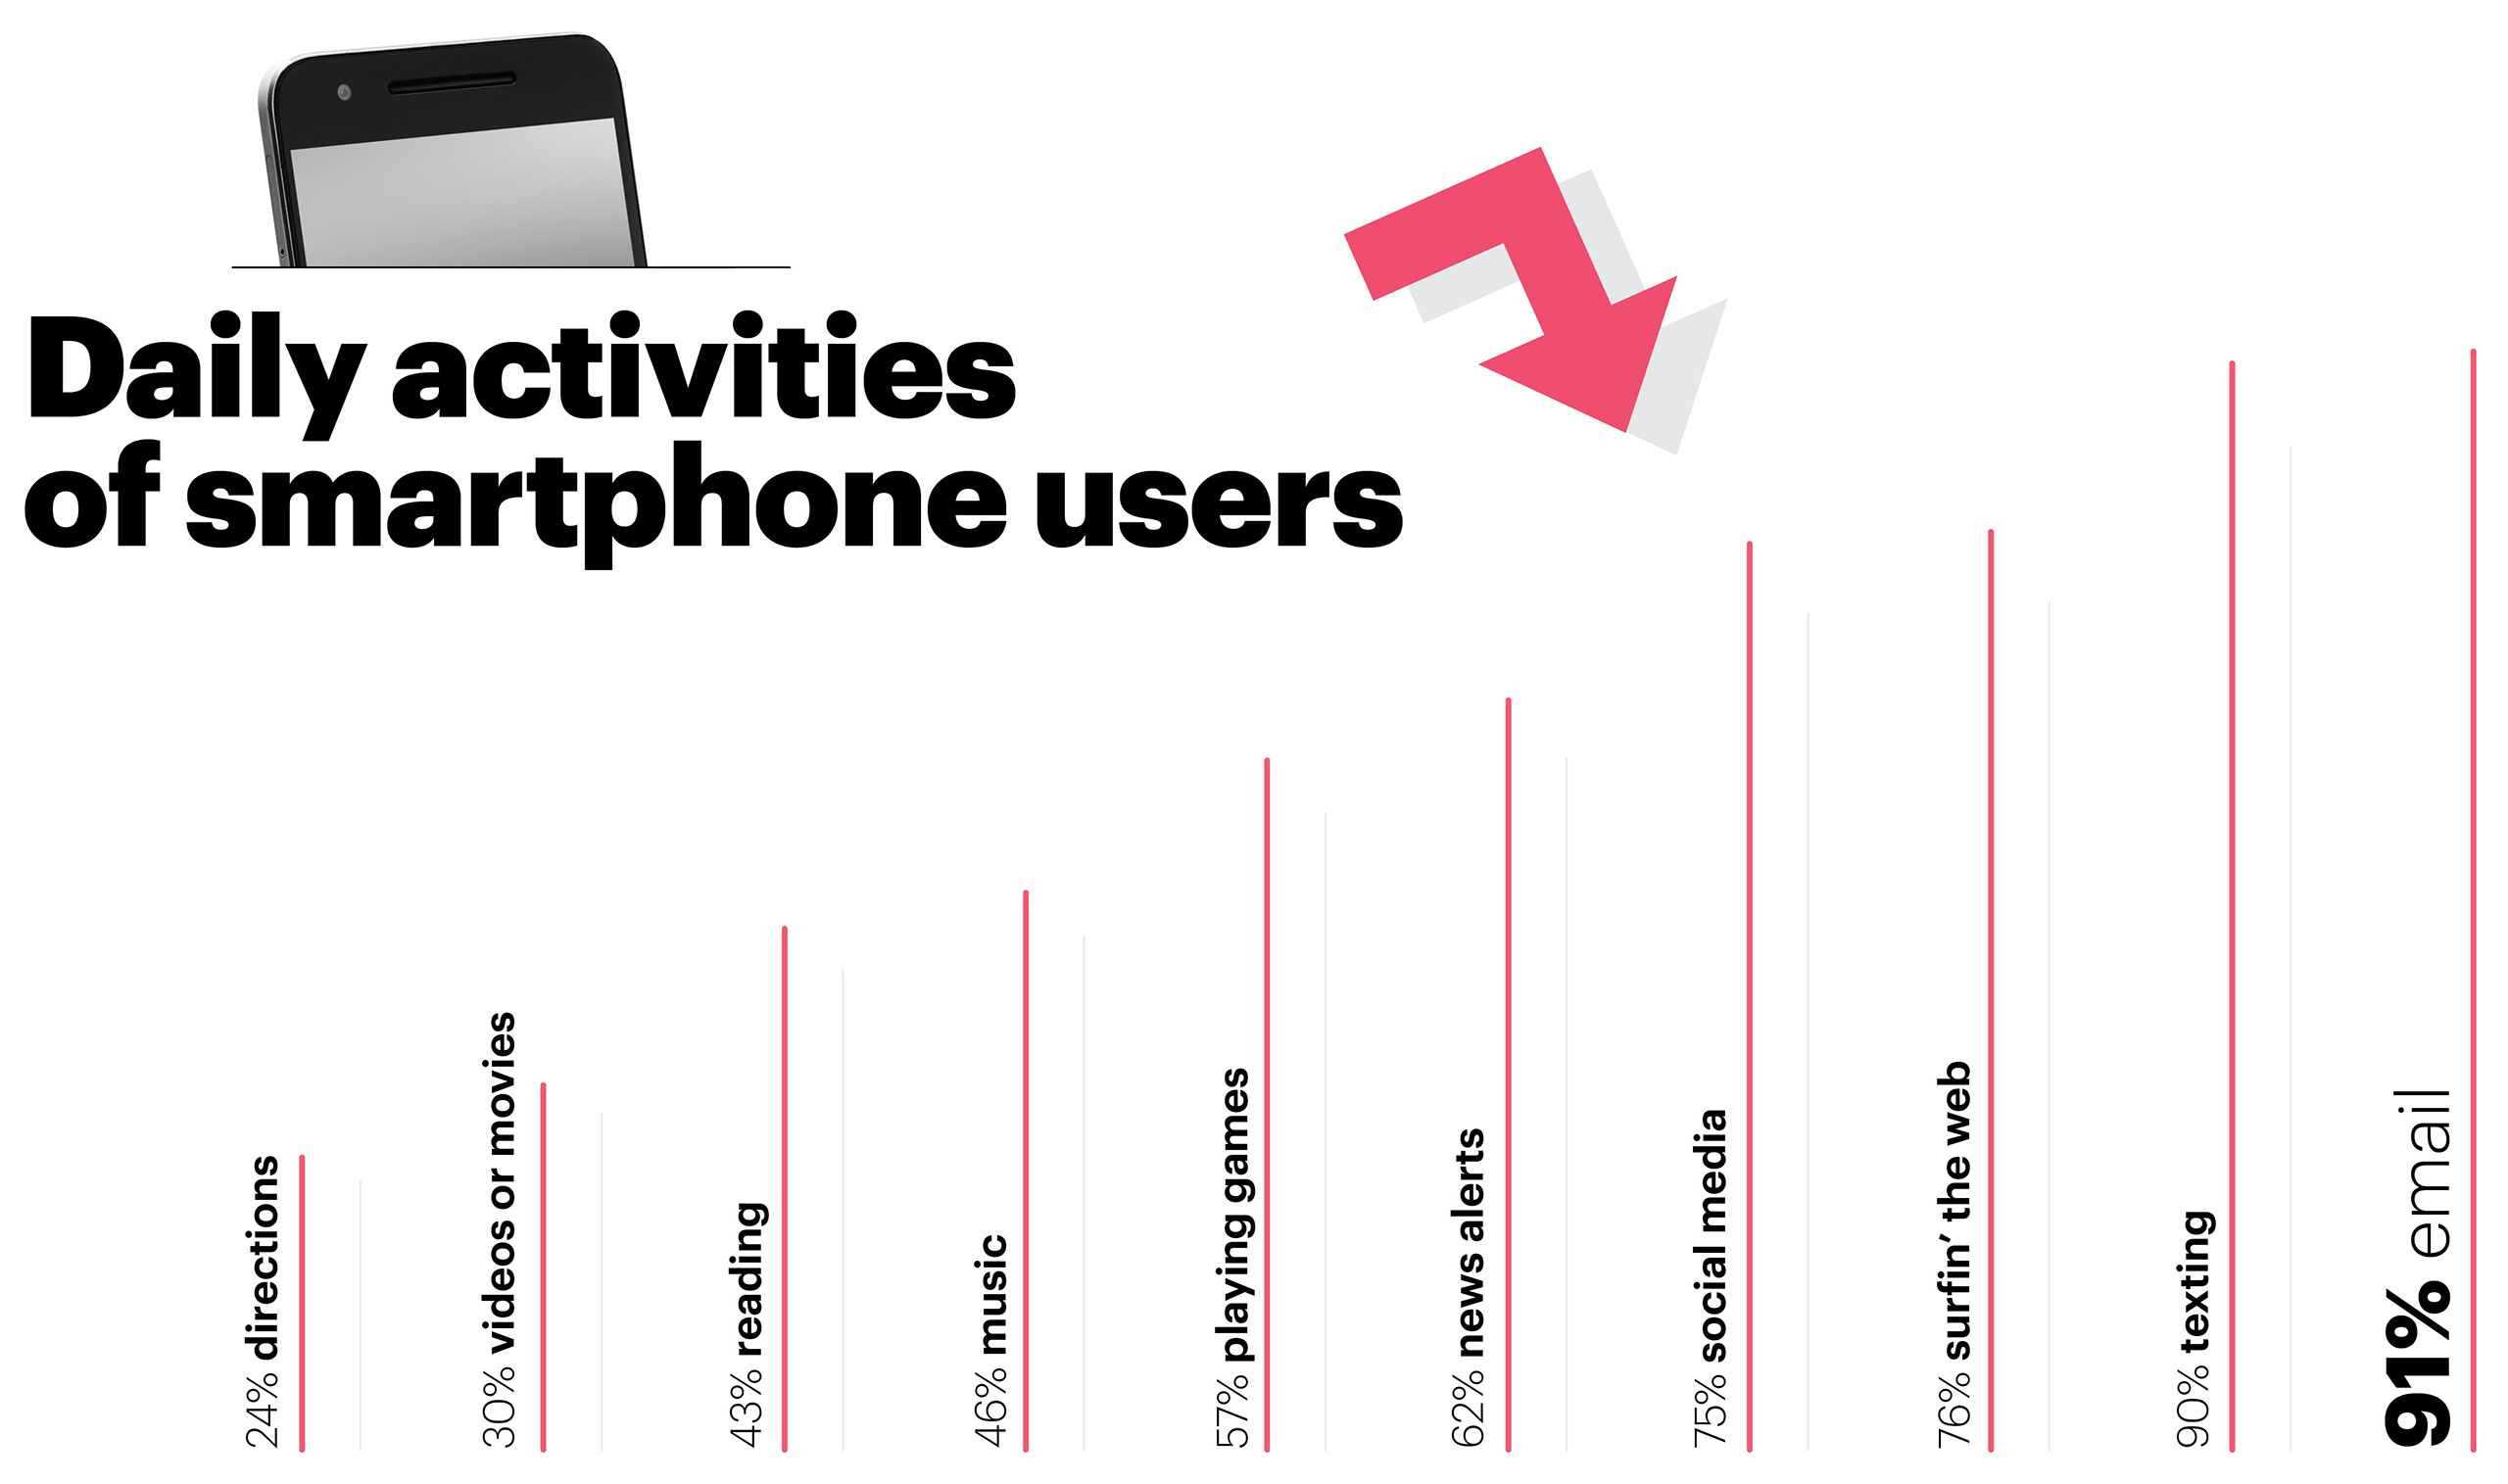 SOURCE: SALESFORCE 2014 MOBILE BEHAVIOR REPORT